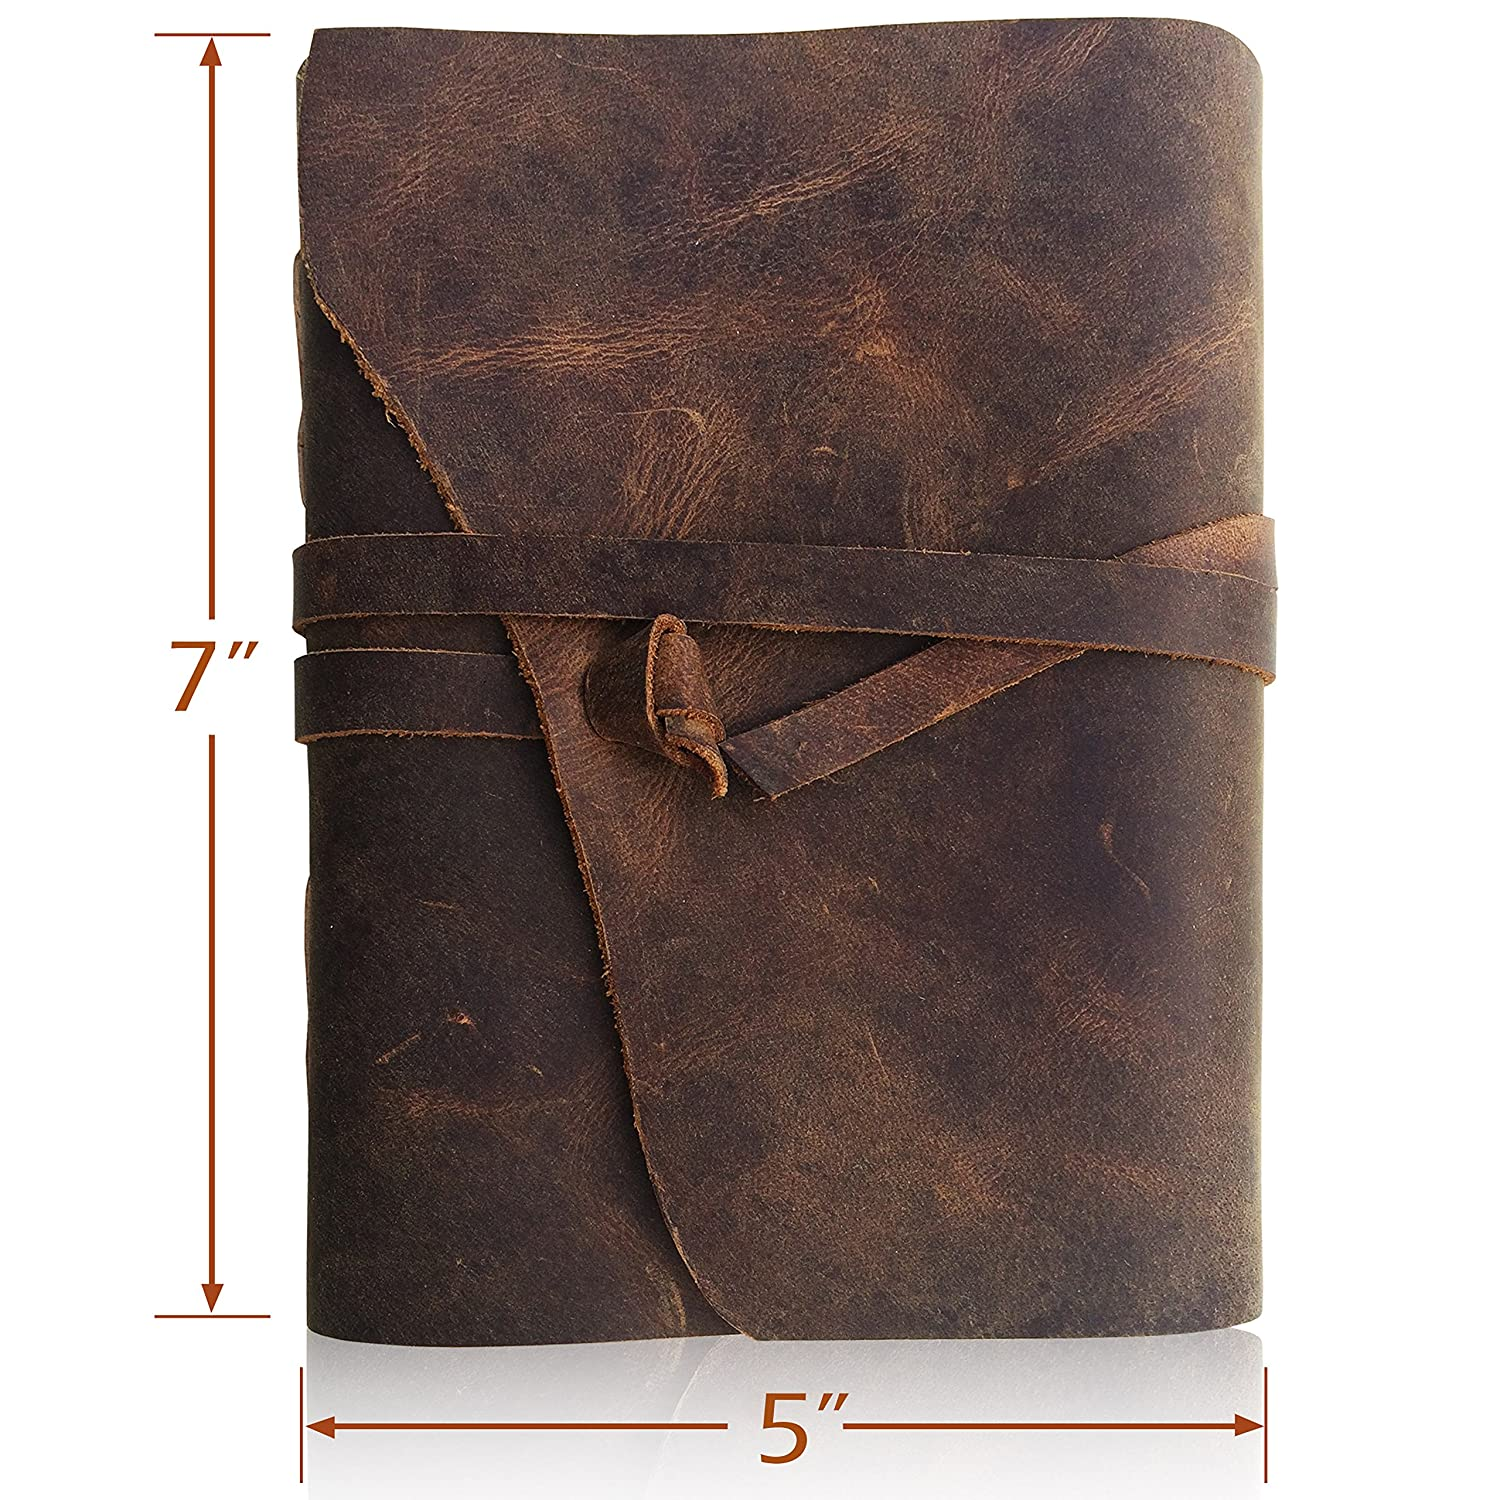 4f22a610f07cc Amazon.com   LEATHER JOURNAL Writing Notebook - Antique Handmade Leather  Bound Daily Notepad For Men   Women Unlined Paper 7 x 5 Inches